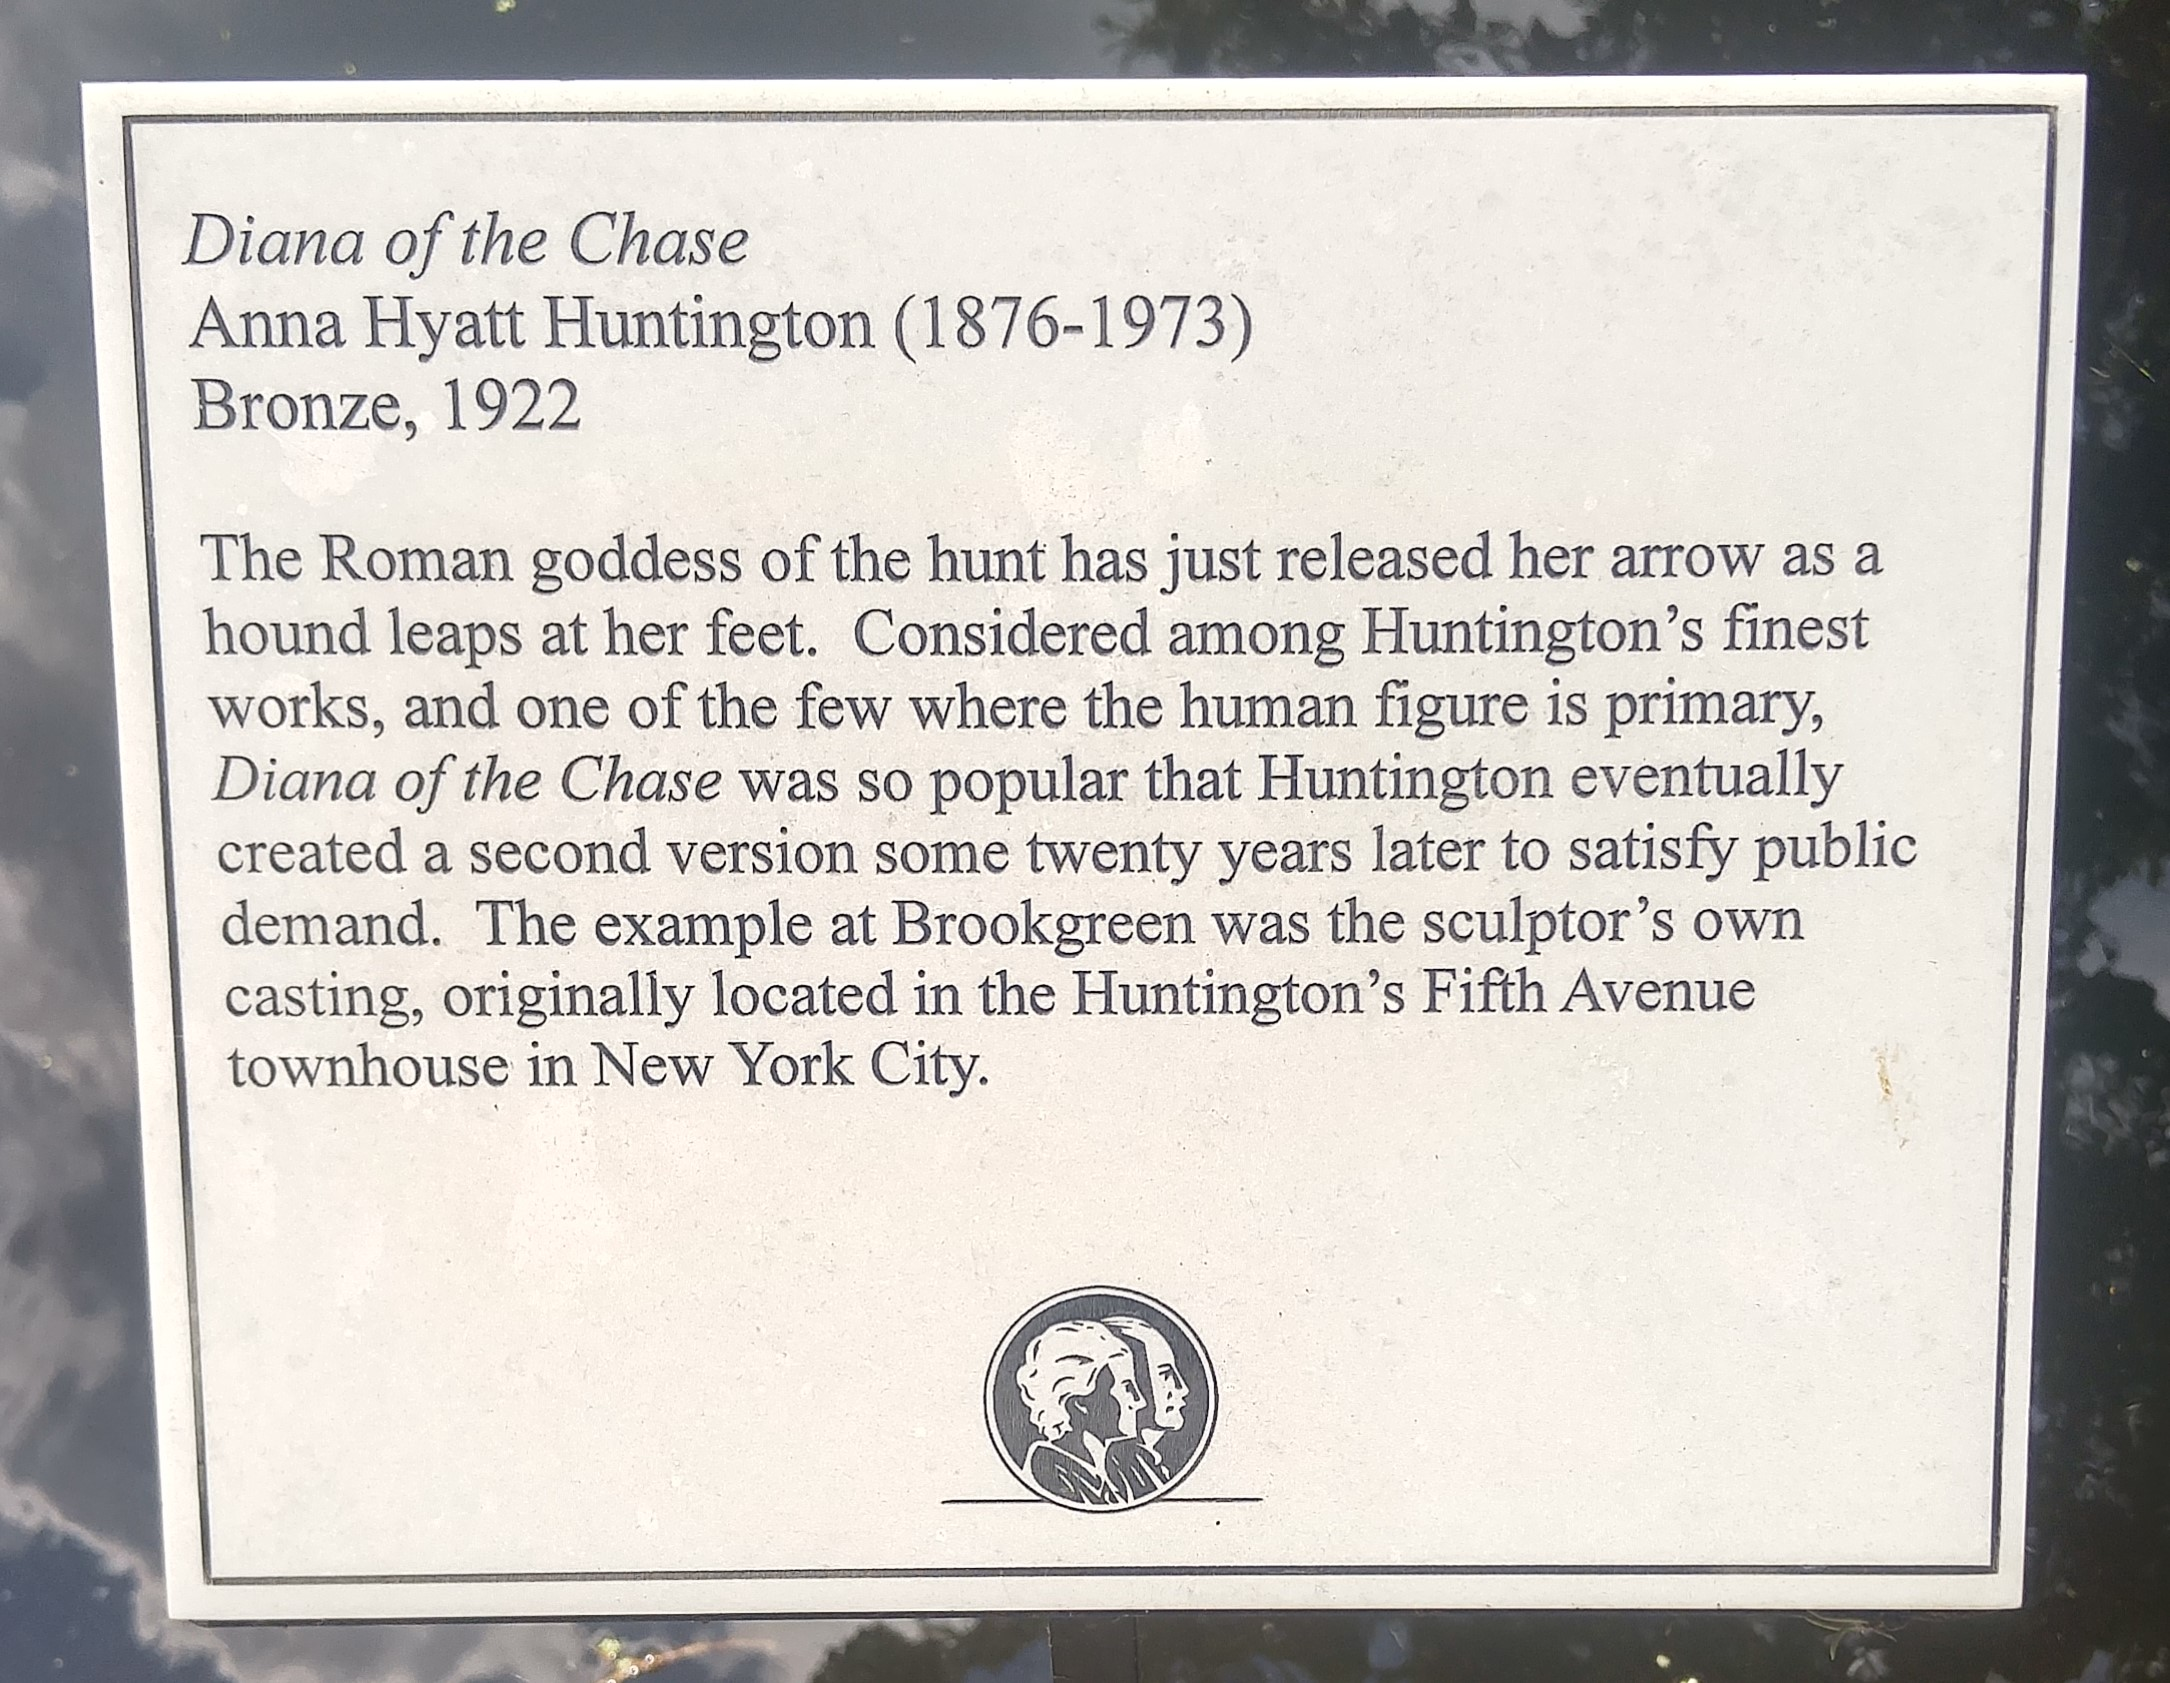 Diana of the Chase by Anna Hyatt Huntington (plaque)